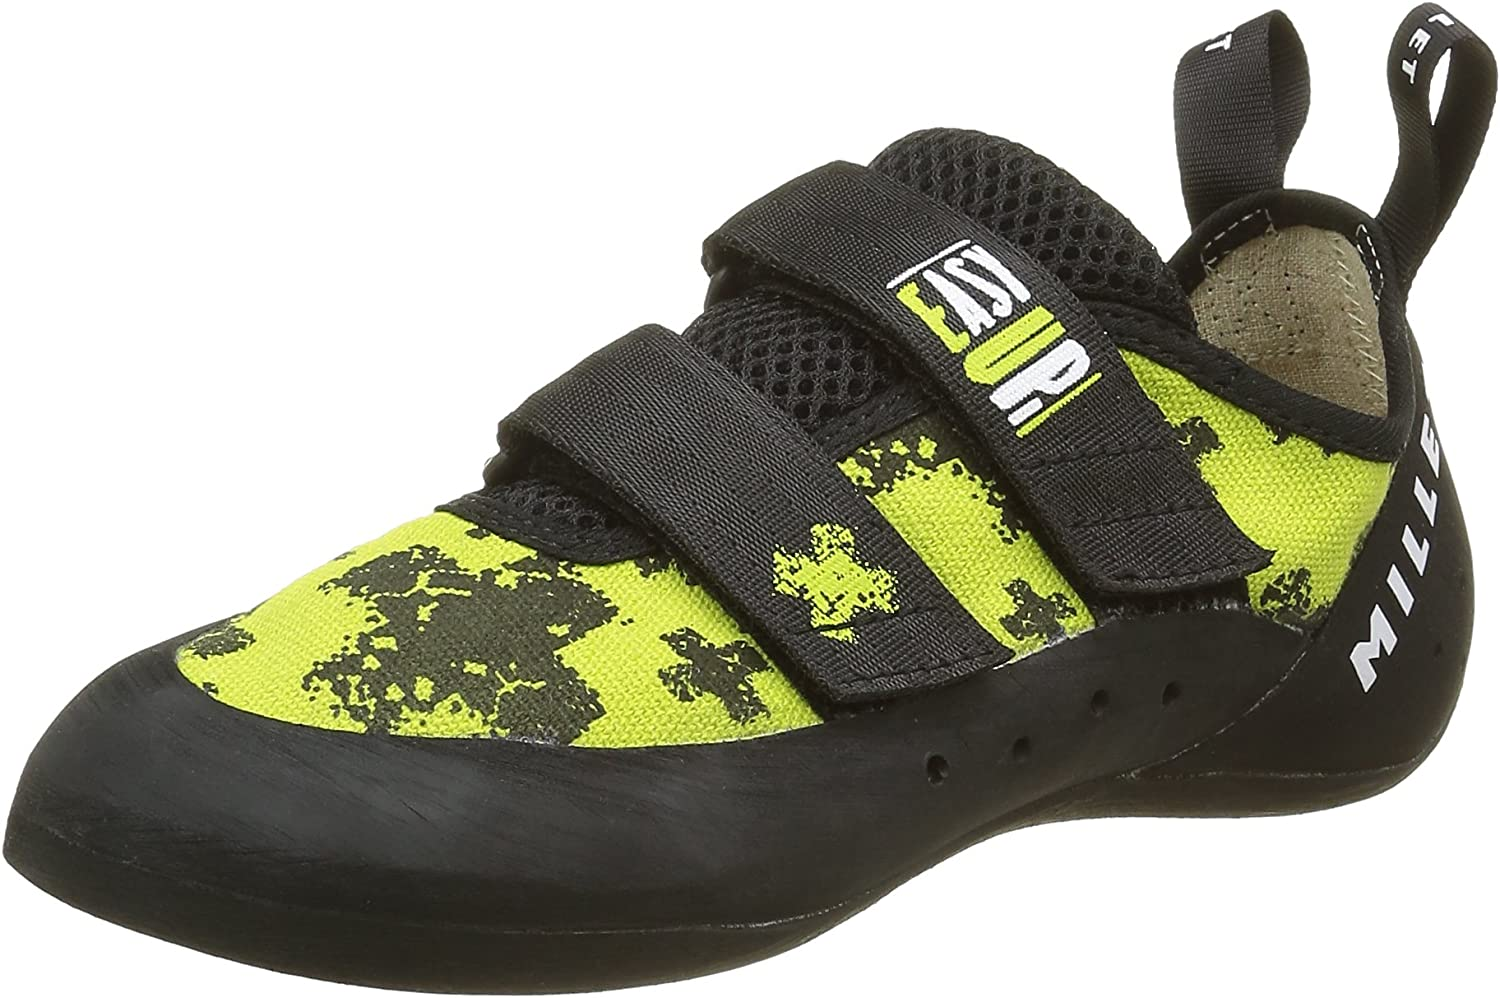 MILLET Easy Up Climbing Shoes: Amazon